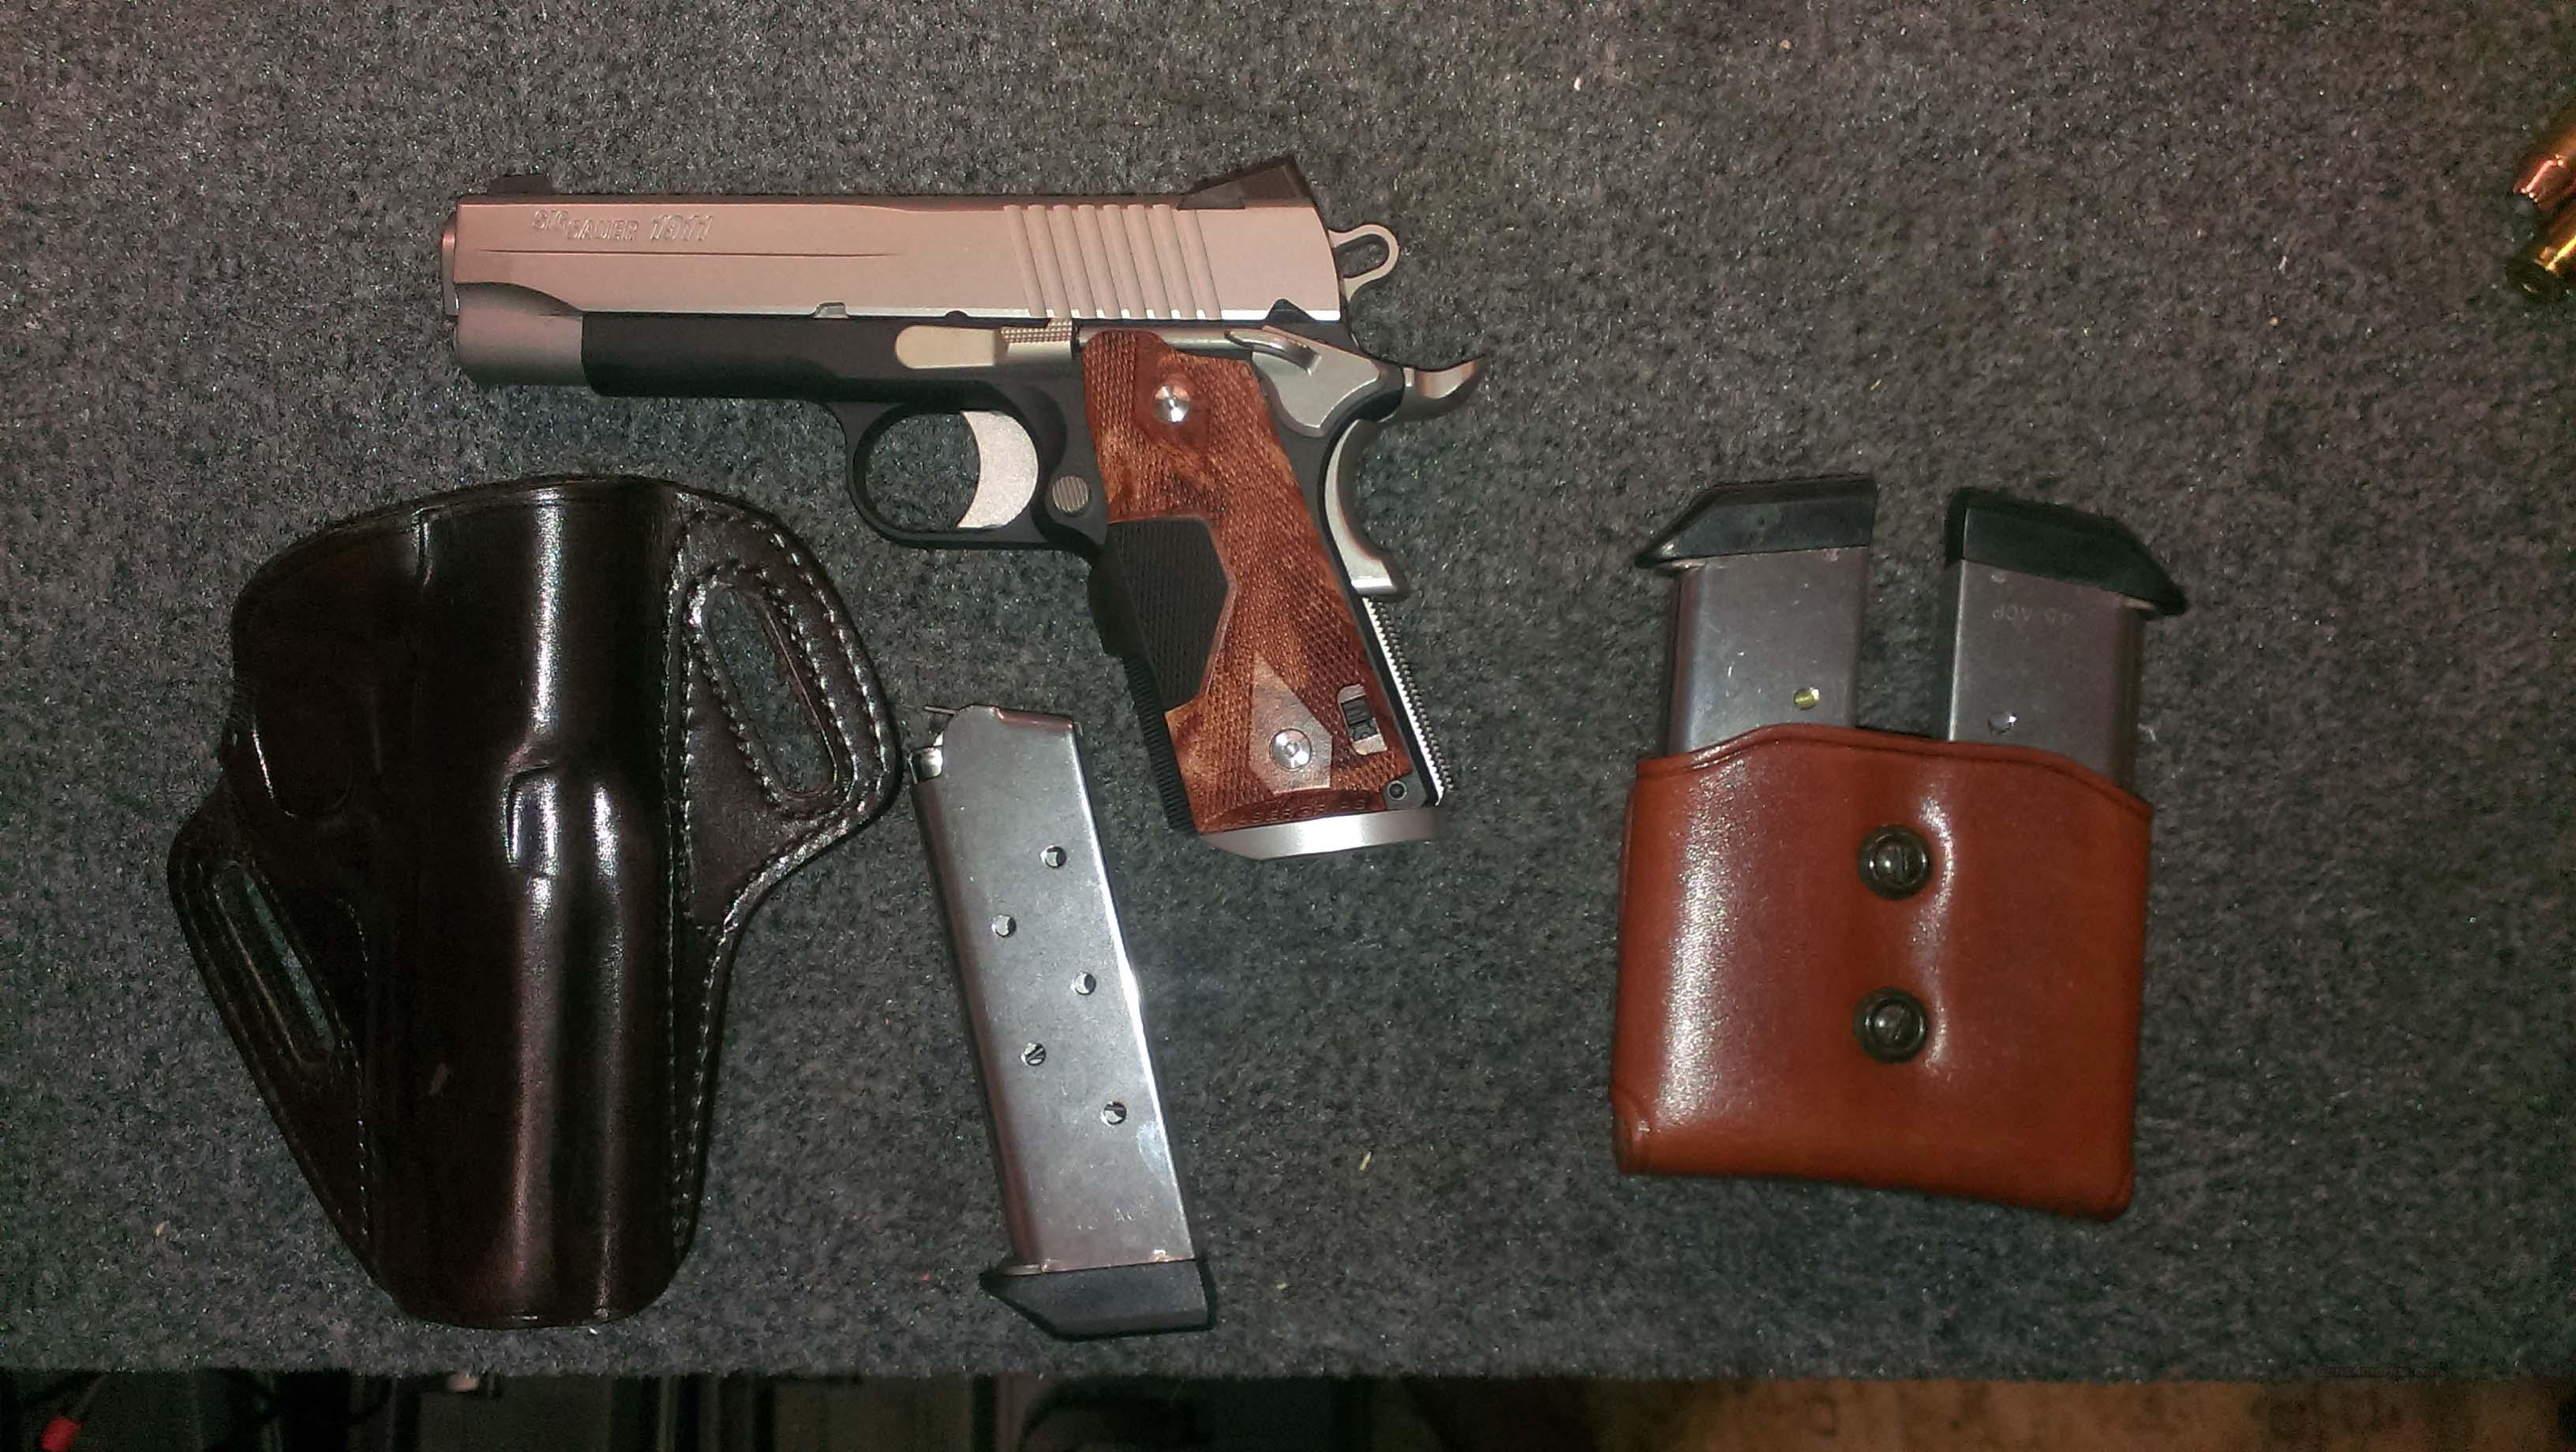 LN SIG SAUER 1911 C3 WITH CRIMSON TRACE GRIPS, 3 MAGS, GALCO HOLSTER AND MAGAZINE HOLSTER  Guns > Pistols > 1911 Pistol Copies (non-Colt)